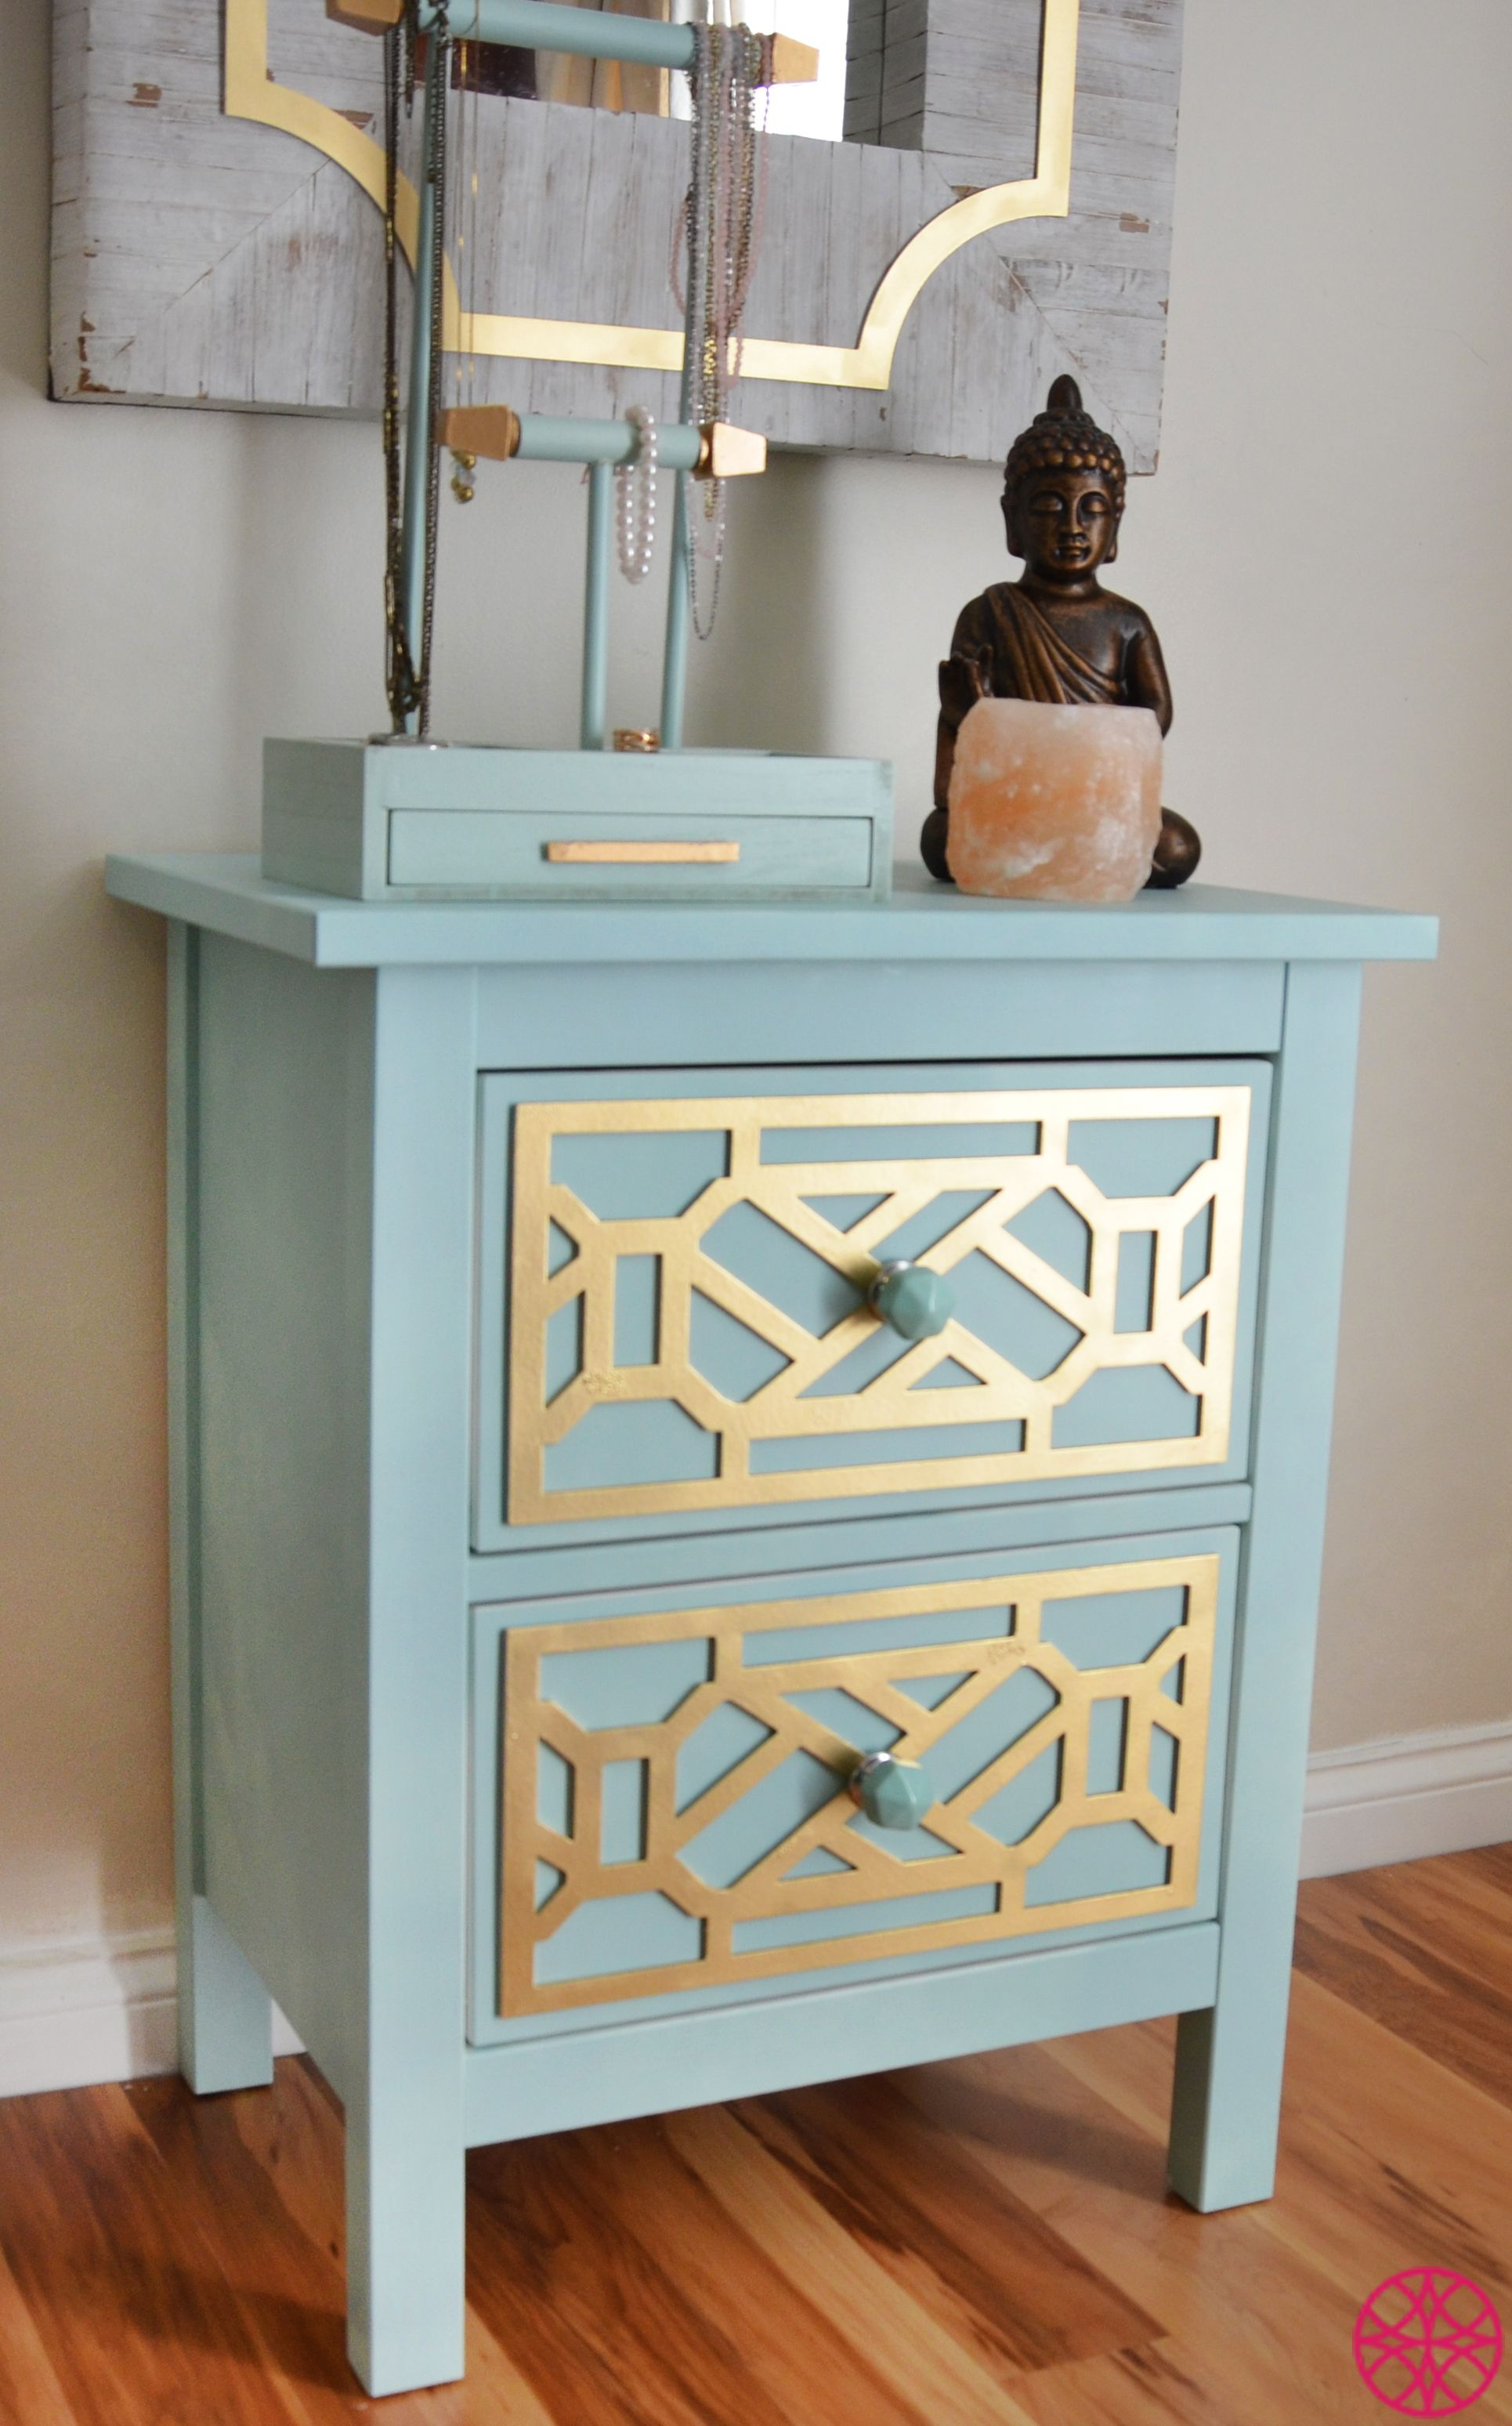 Gold Cheryle O Verlays On The Ikea Hemnes Nightstand Painted Robin S Egg Blue Is The Perfect Ikea Furniture Makeover Diy Nightstand Makeover Furniture Makeover